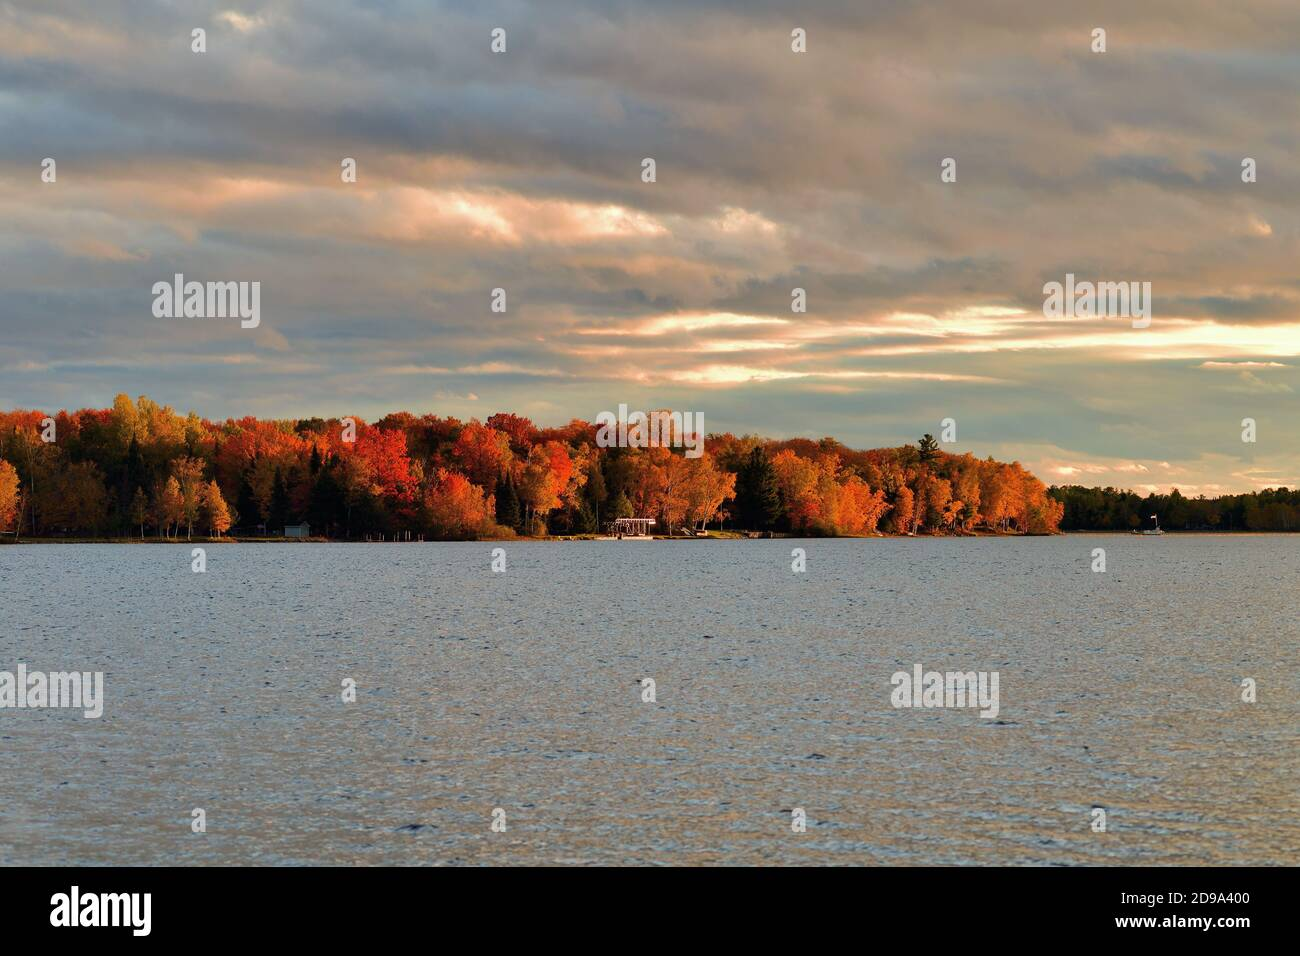 Trout Lake, Michigan, USA. Fall and the late afternoon sun descend on a stretch of shoreline along Trout Lake in the Upper Peninsula of Michigan. Stock Photo